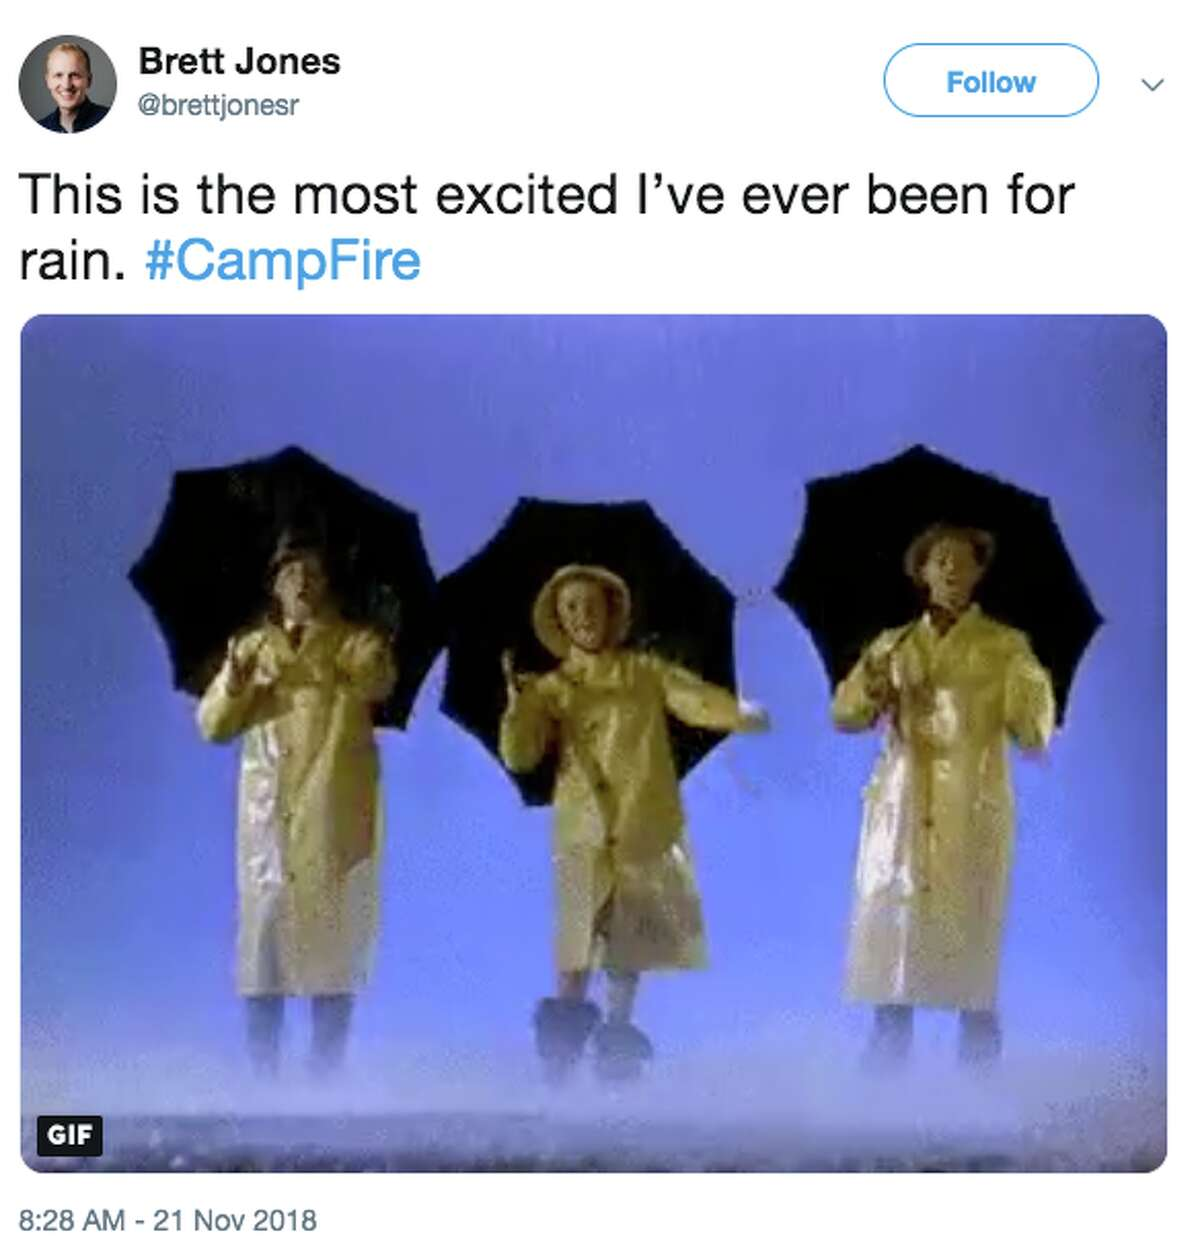 Northern California saw its first rain in seven weeks Wednesday morning, and when the drops began to fall, social media lit up with photos, videos and messages.